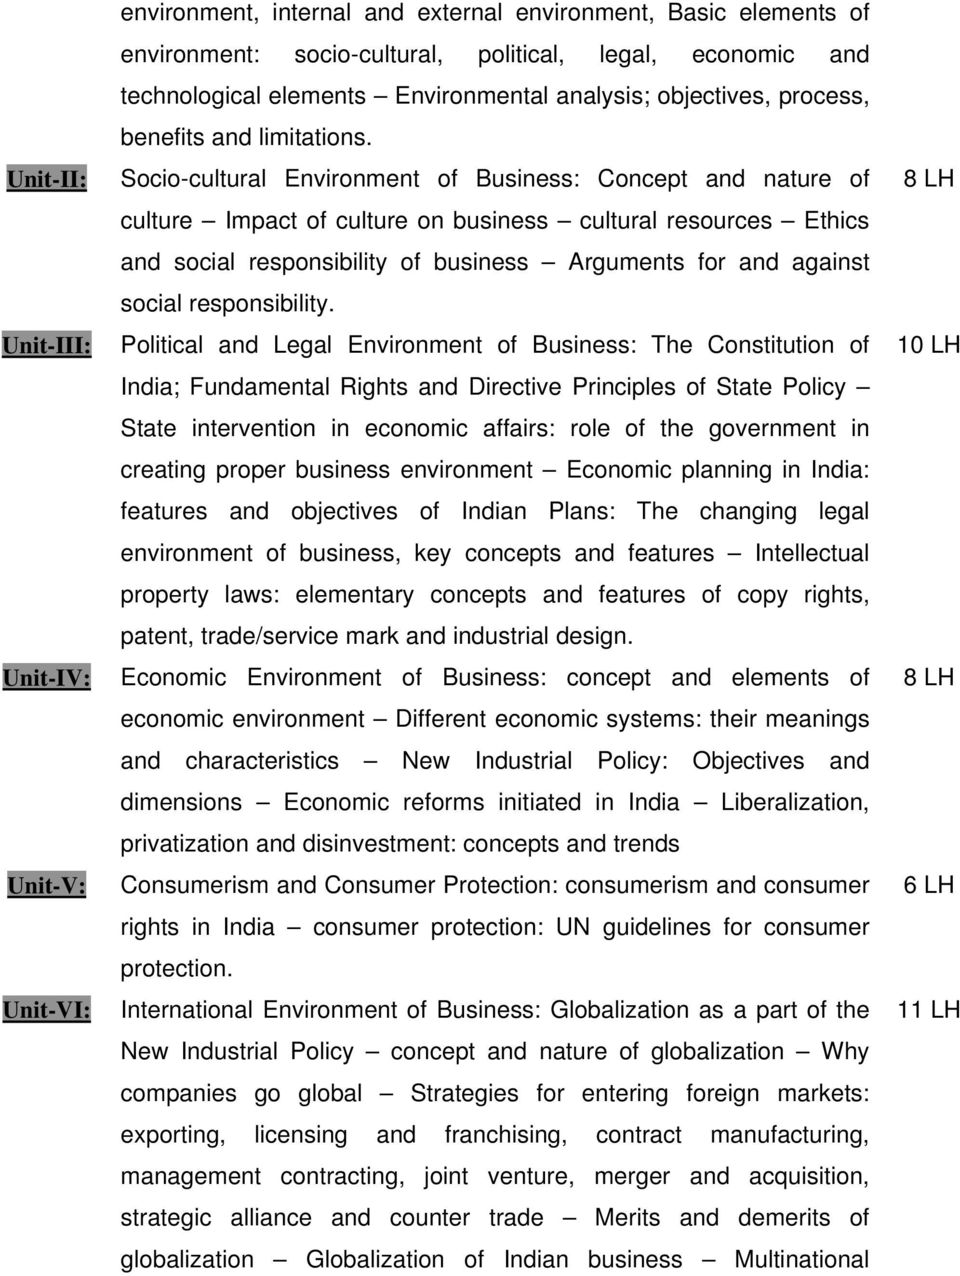 Socio-cultural Environment of Business: Concept and nature of culture Impact of culture on business cultural resources Ethics and social responsibility of business Arguments for and against social